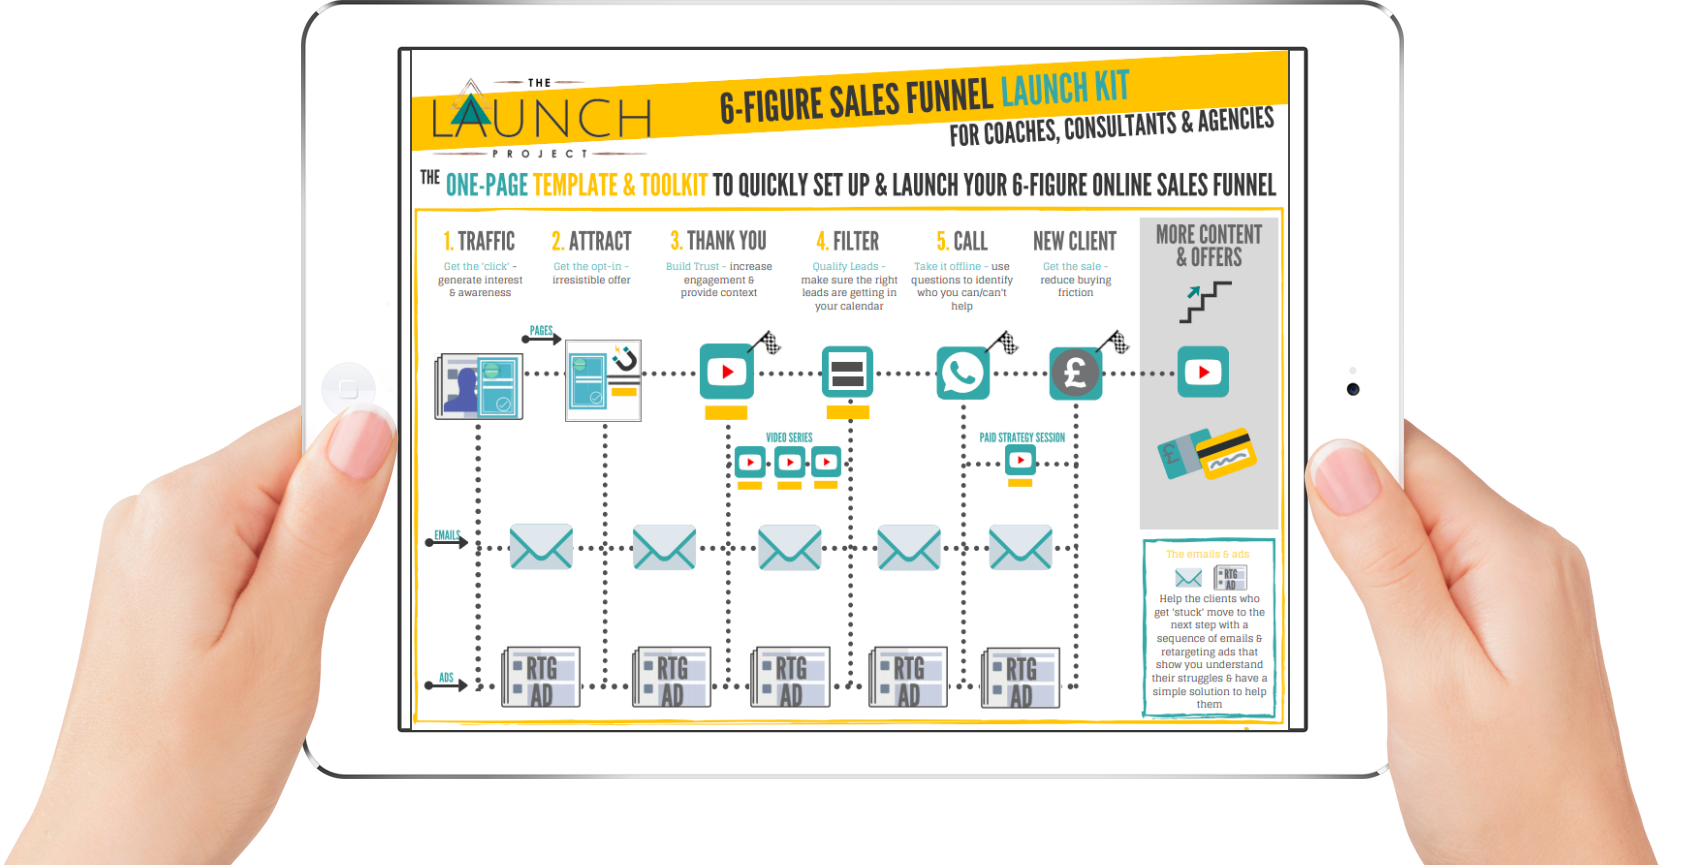 THE LAUNCH PROJECT 6 figure sales Funnel template toolkit launch plan